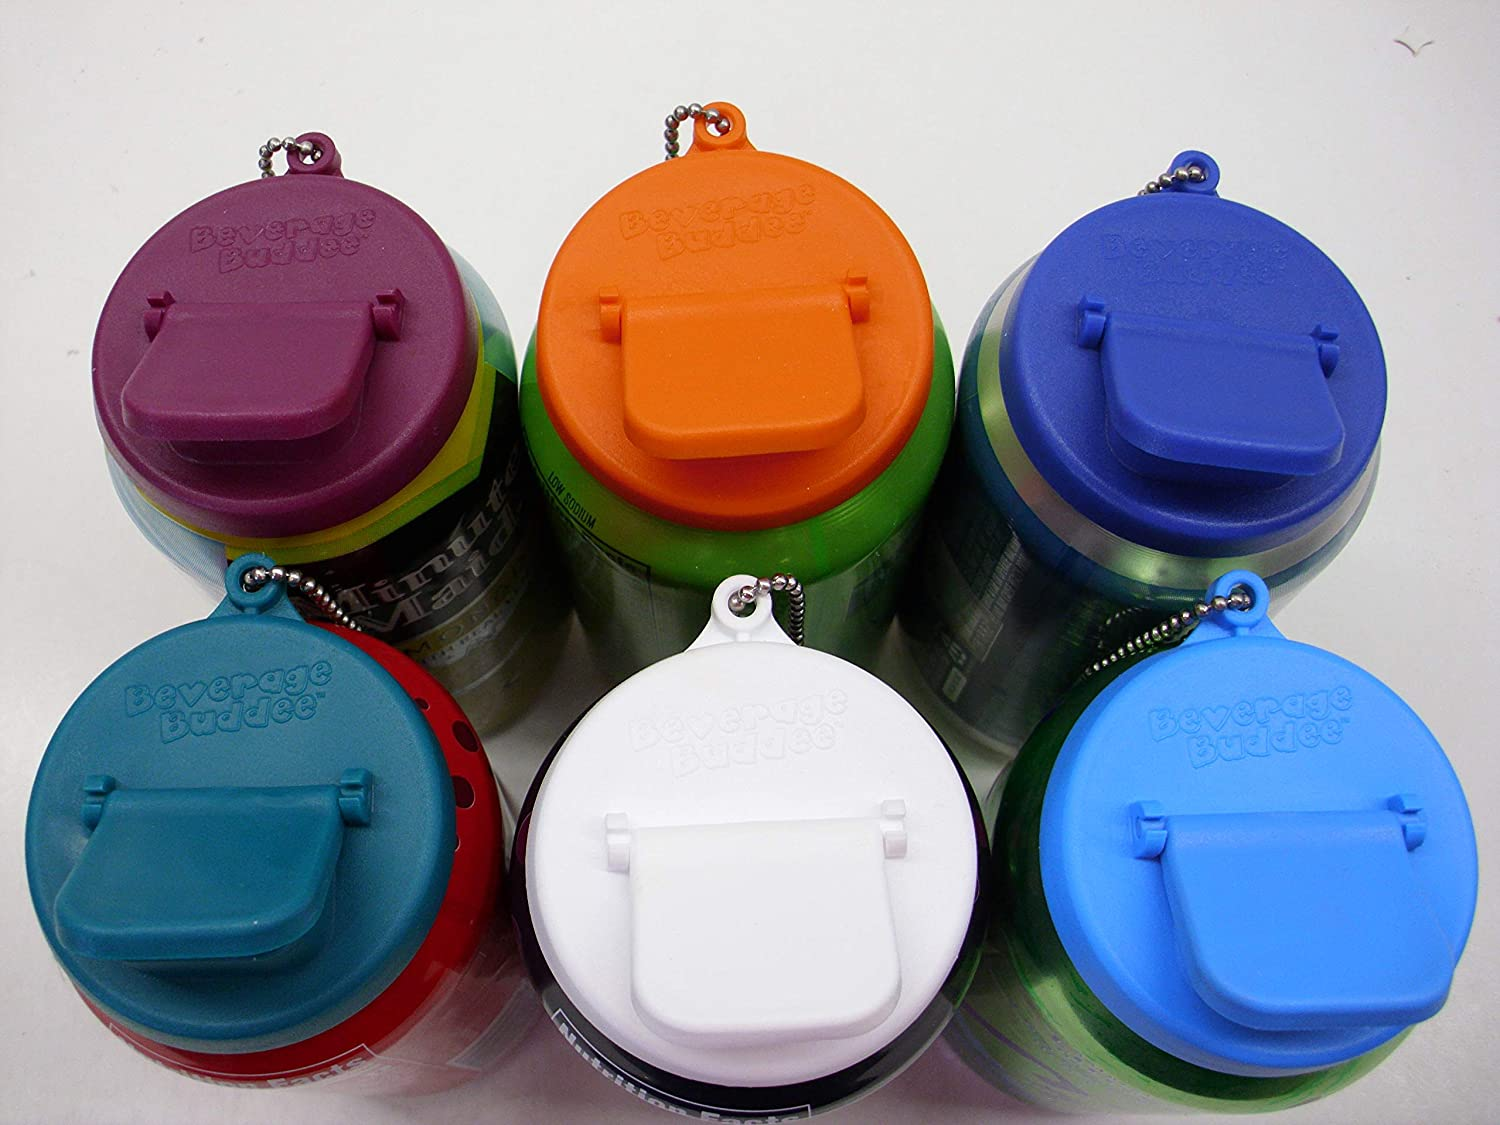 Beverage Budde Can Cover - Can Cover For Standard Size Soda/Beer/Energy Drink Cans - Made In The USA - BPA-PCB Free - Assort Colors - 6 pack (Keychain)